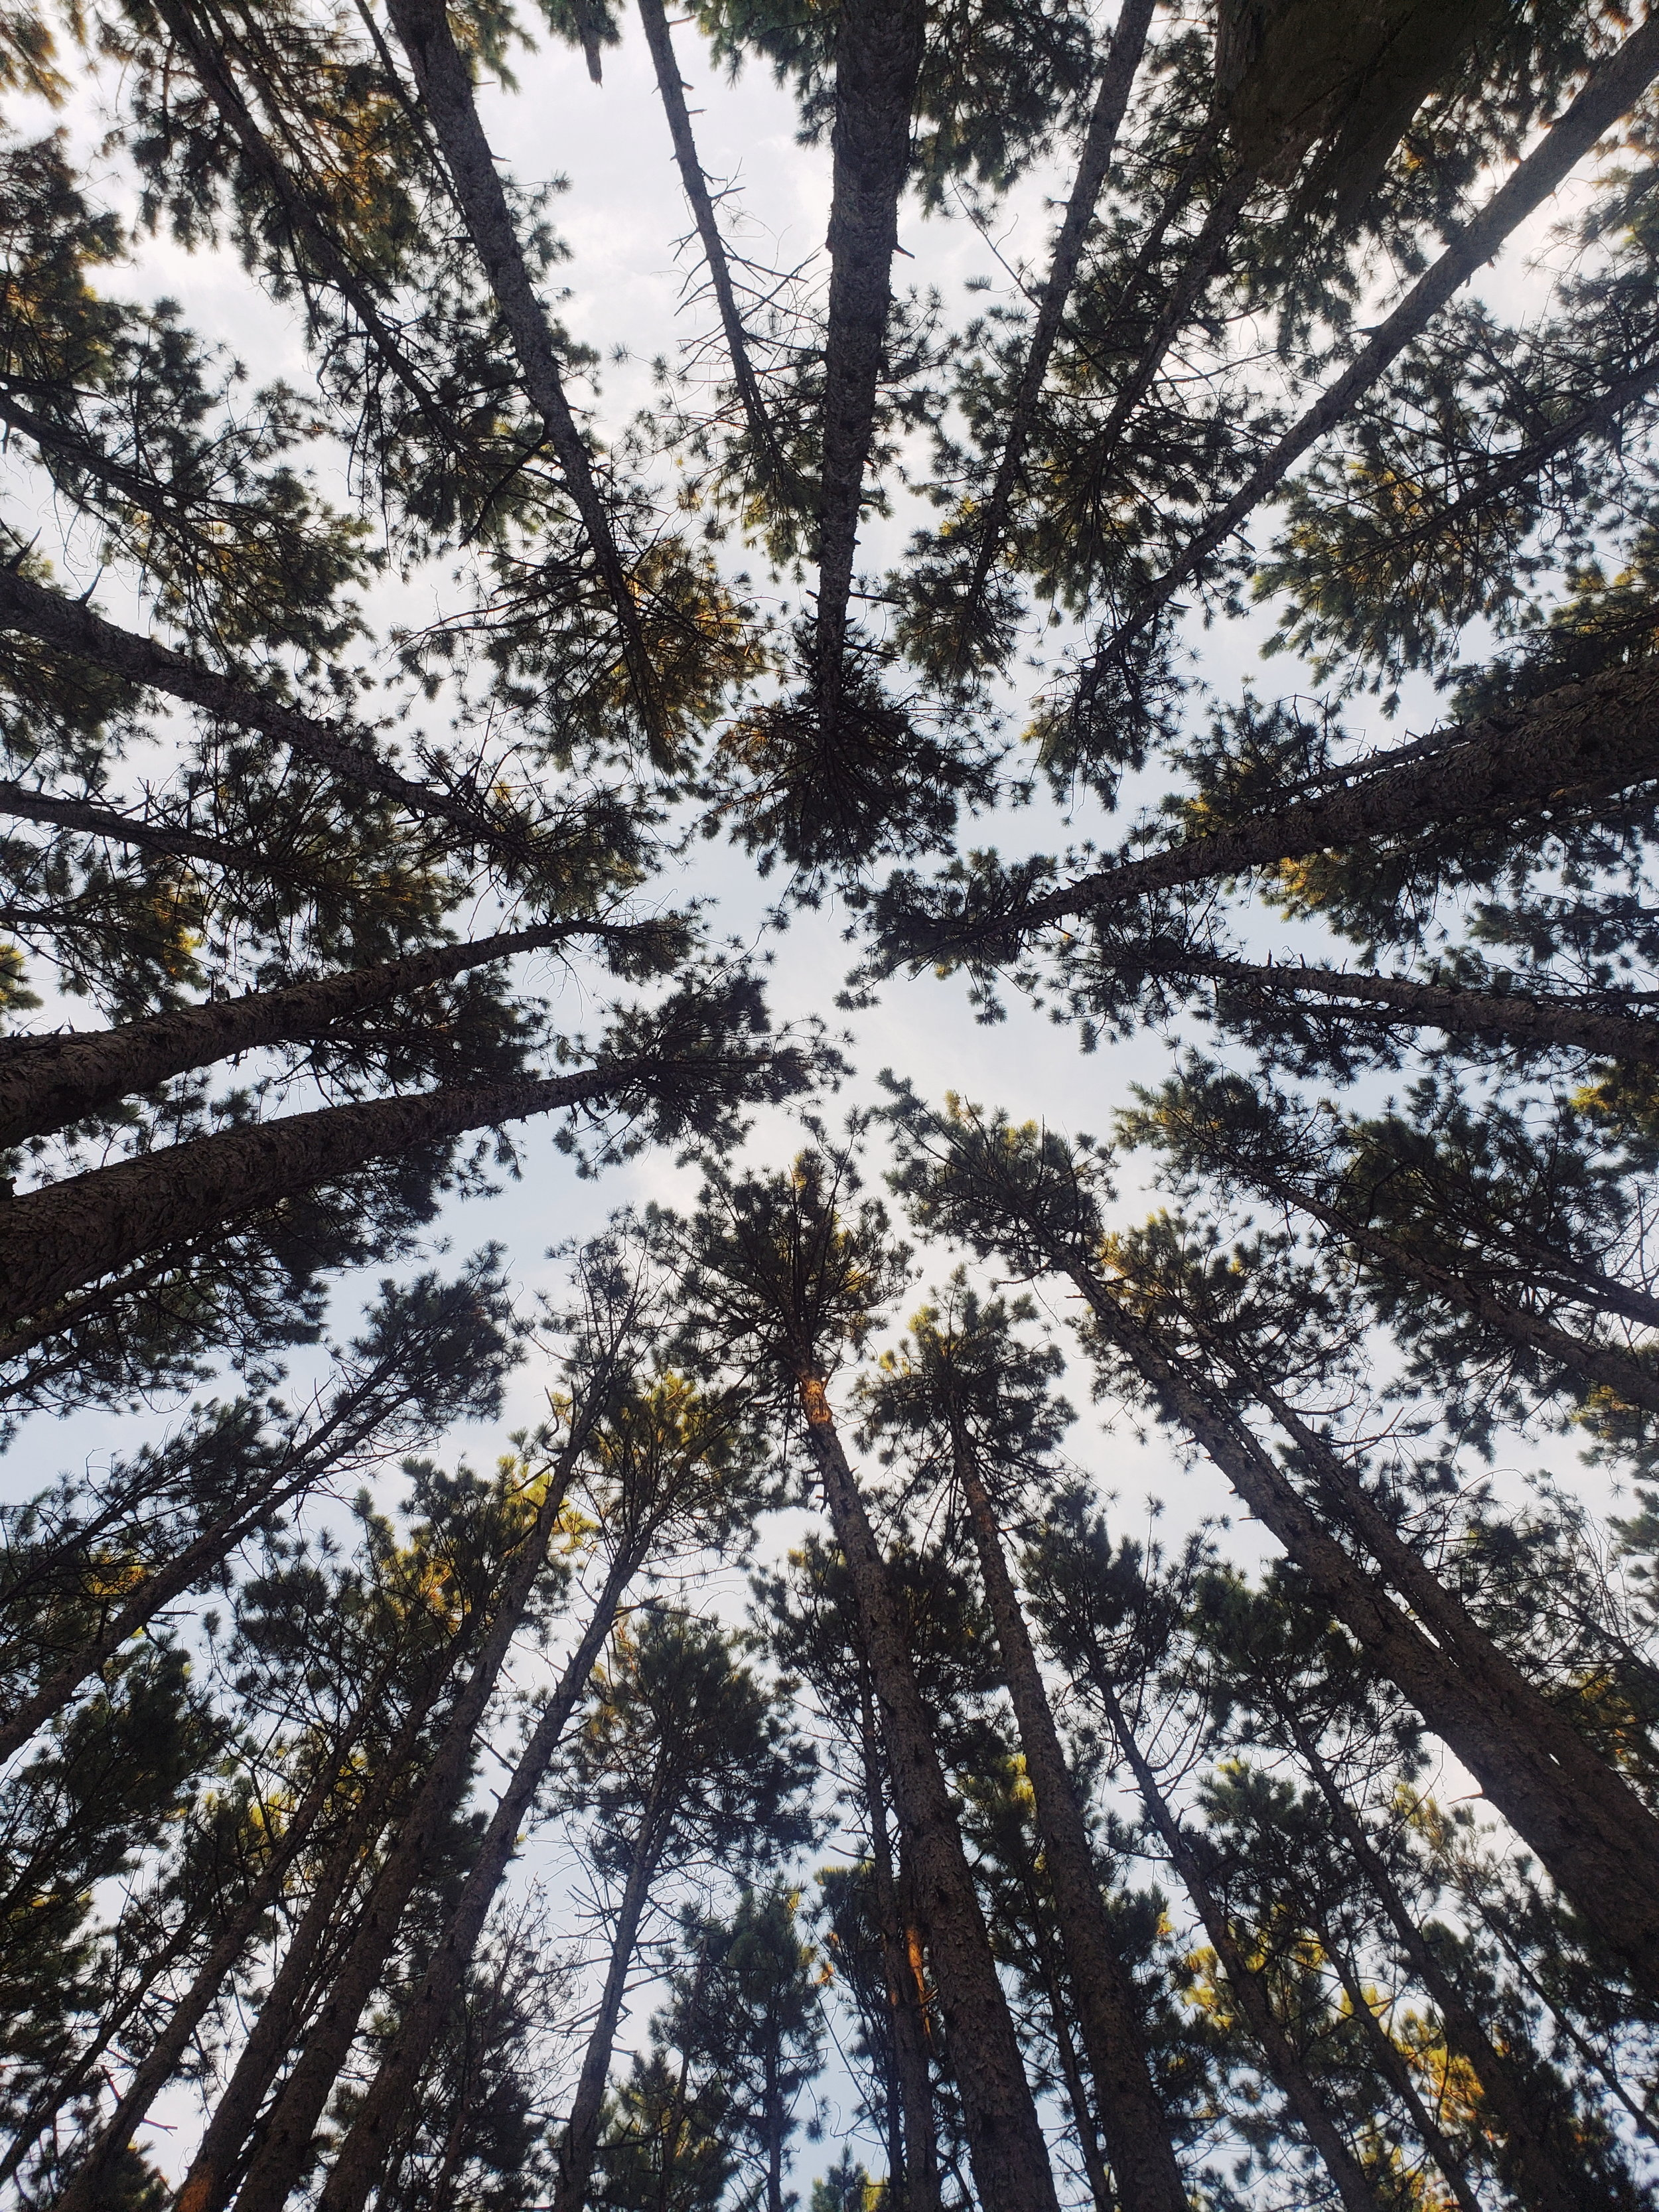 looking up at trees while riding a horse